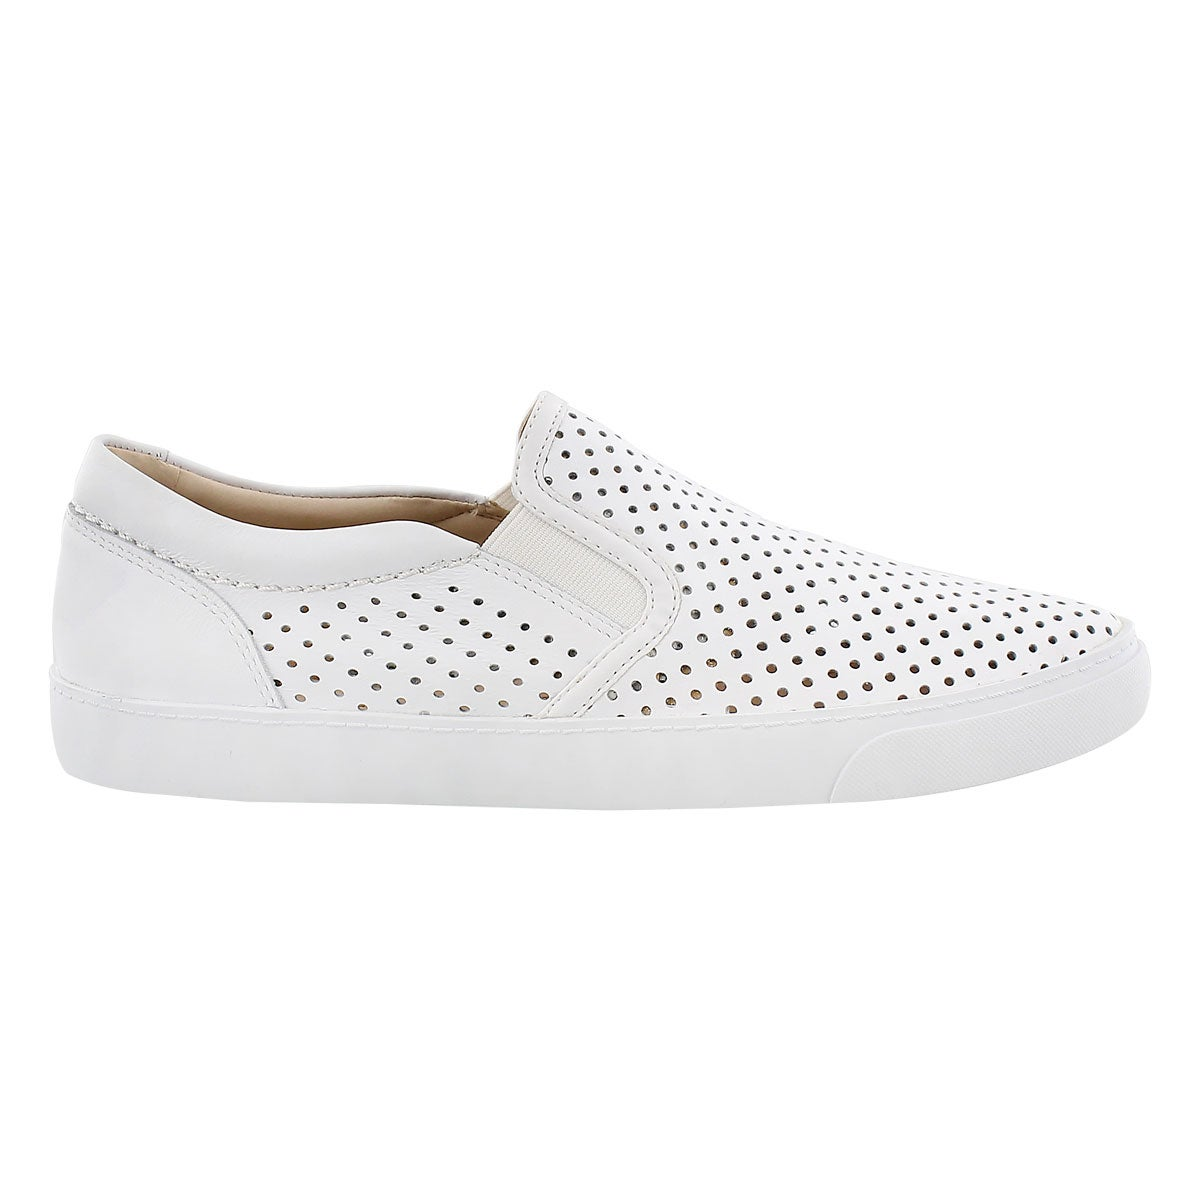 Lds Glove Puppet white leather slip on